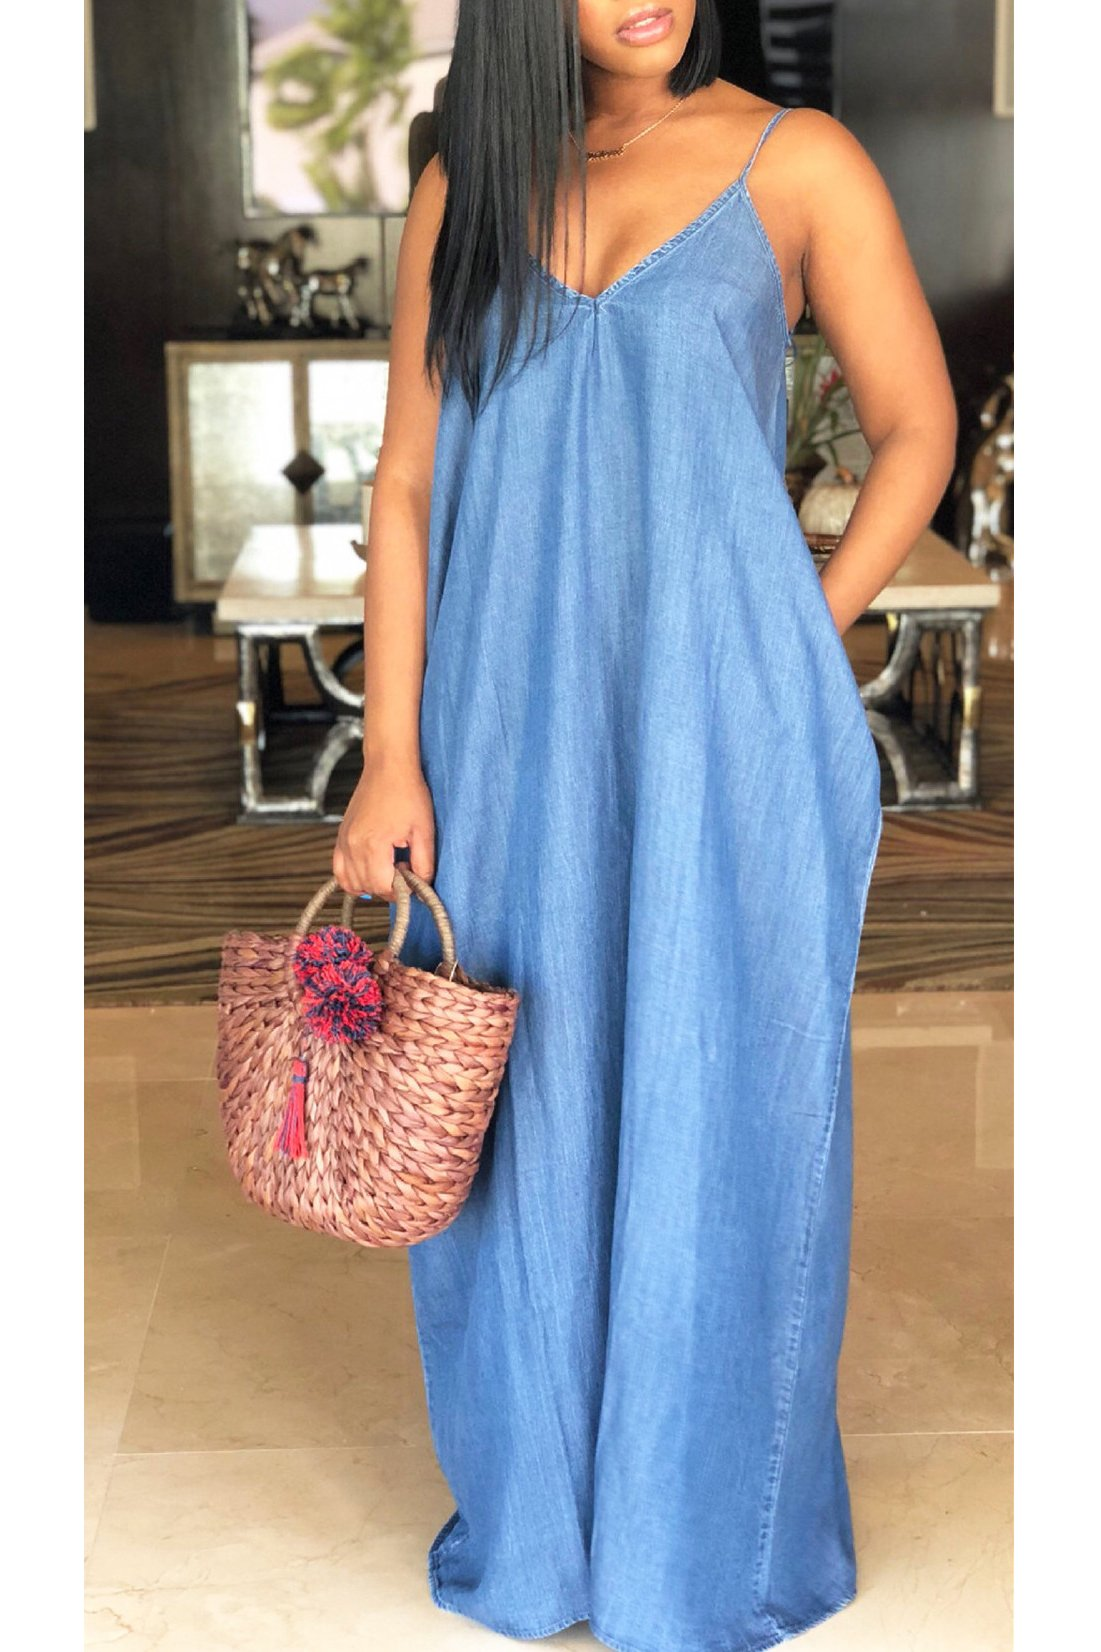 Relax Denim Maxi Dress - ezcute